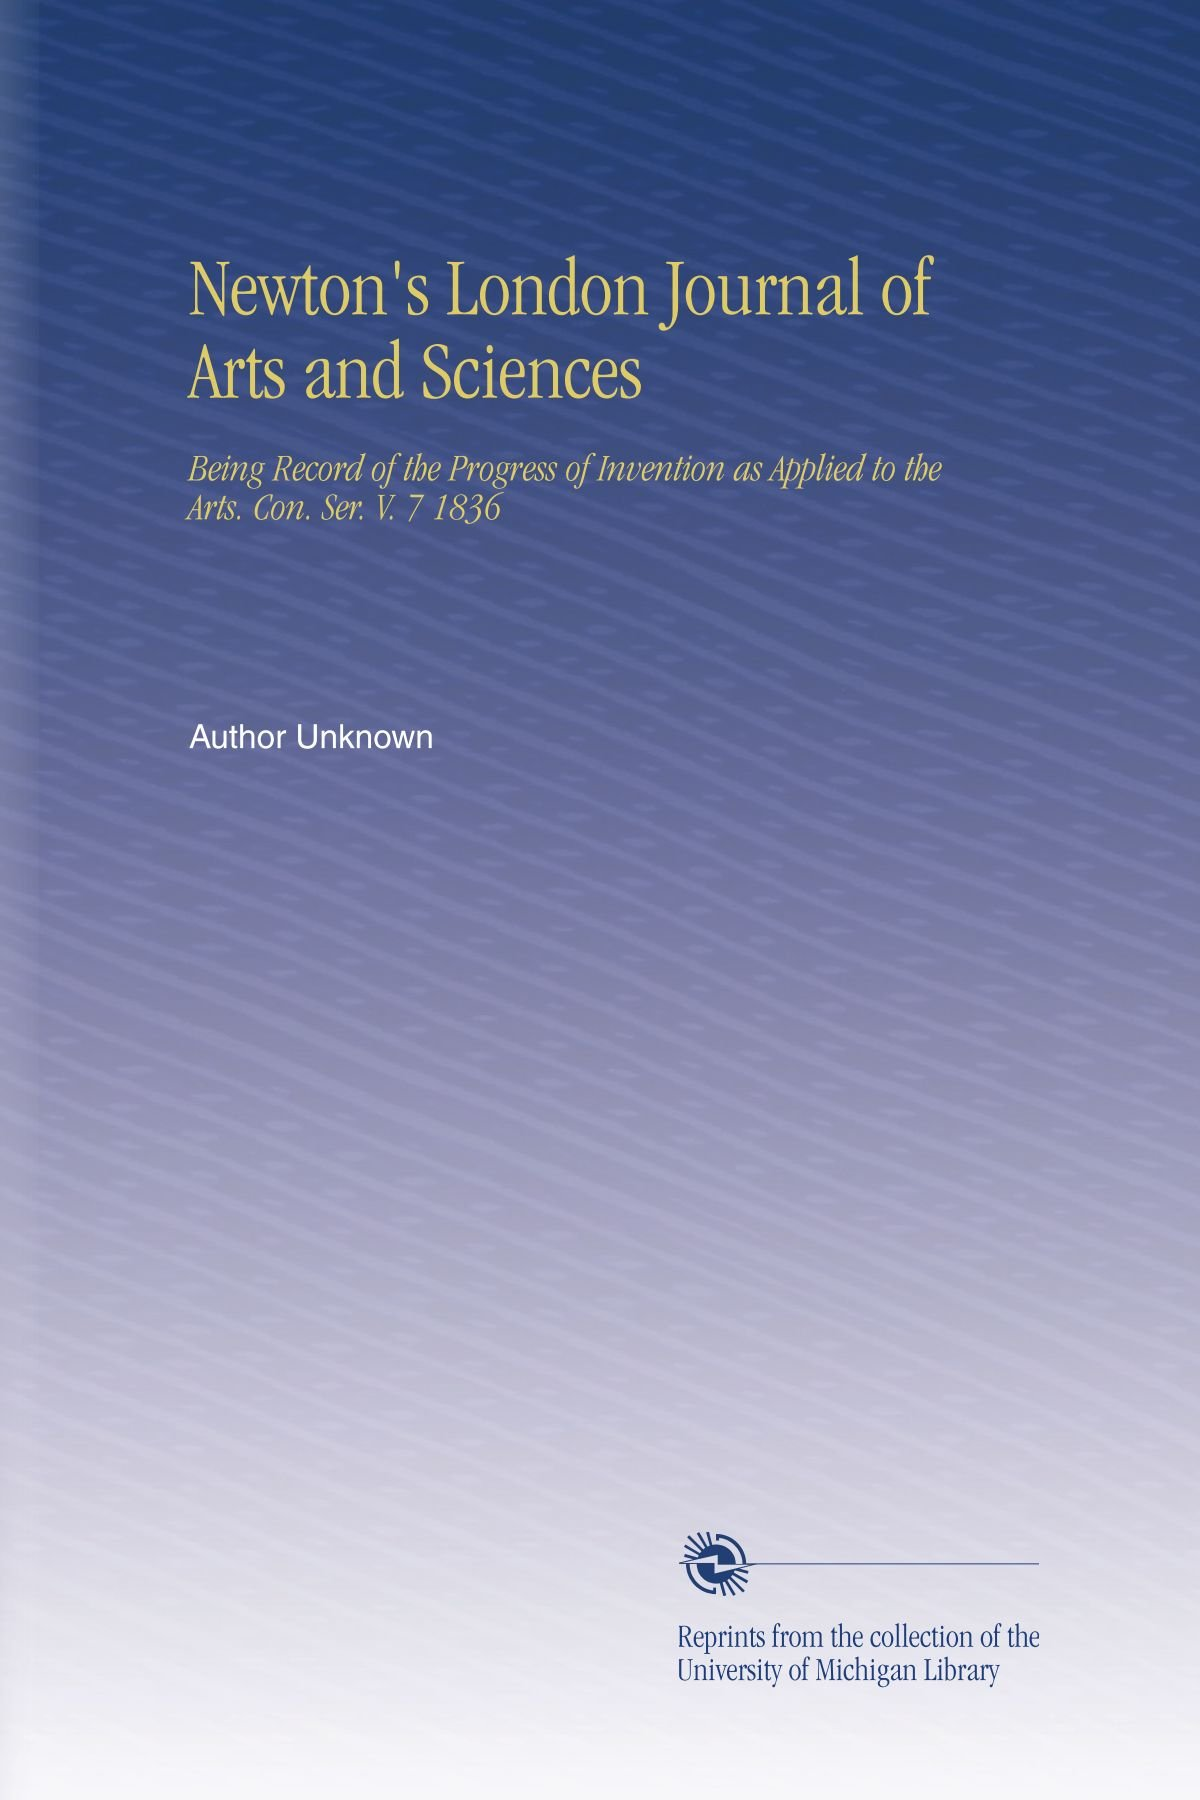 Newton's London Journal of Arts and Sciences: Being Record of the Progress of Invention as Applied to the Arts. Con. Ser. V. 7 1836 PDF